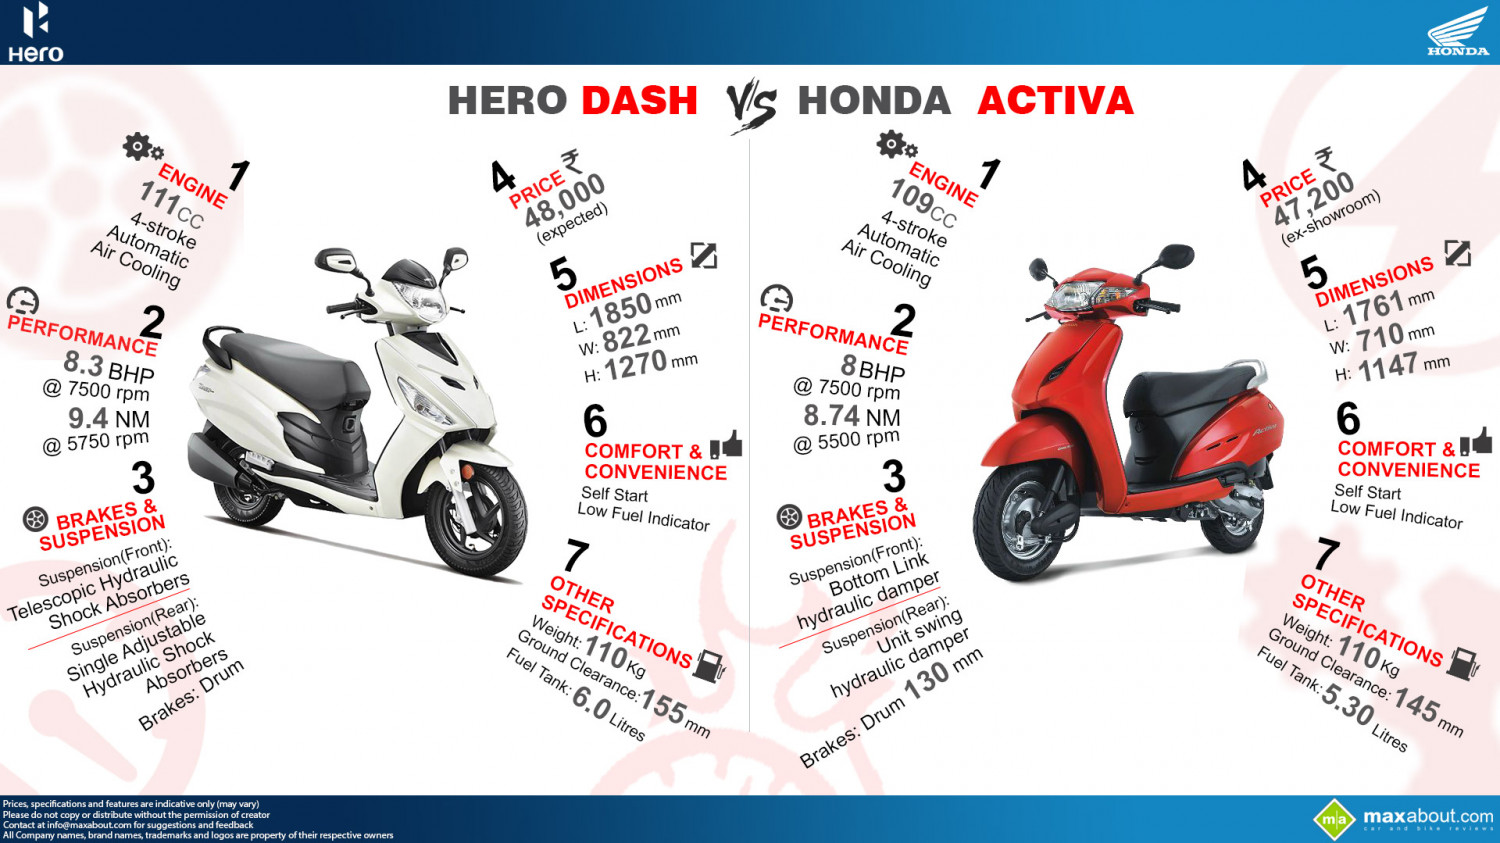 Honda Activa vs. Hero Dash Infographic